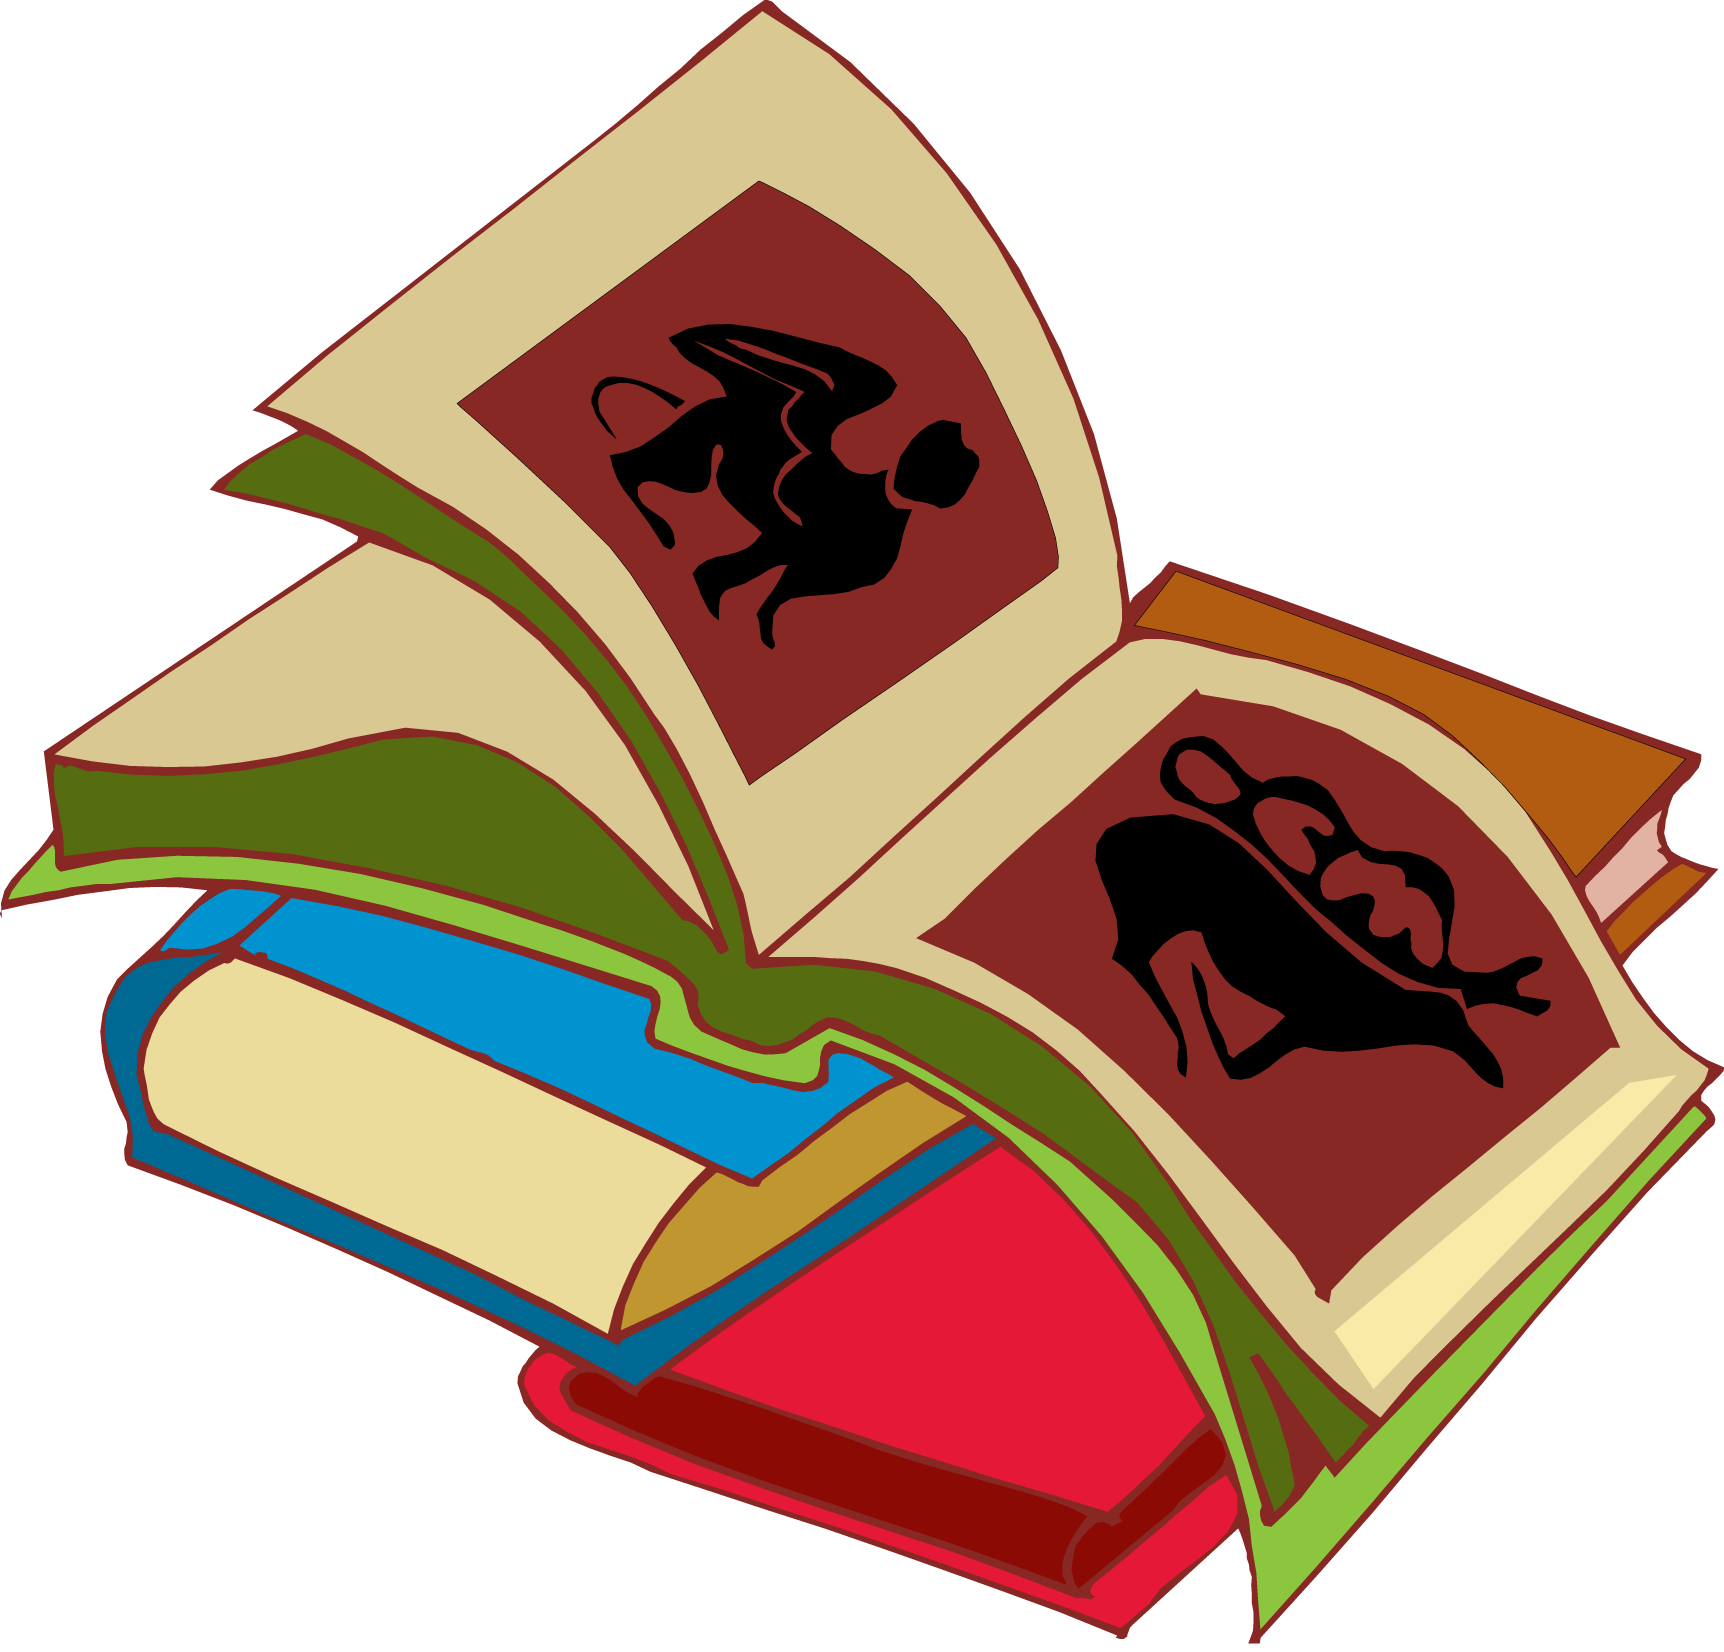 1724x1652 Stack of books image stack clipart school book clip art 5